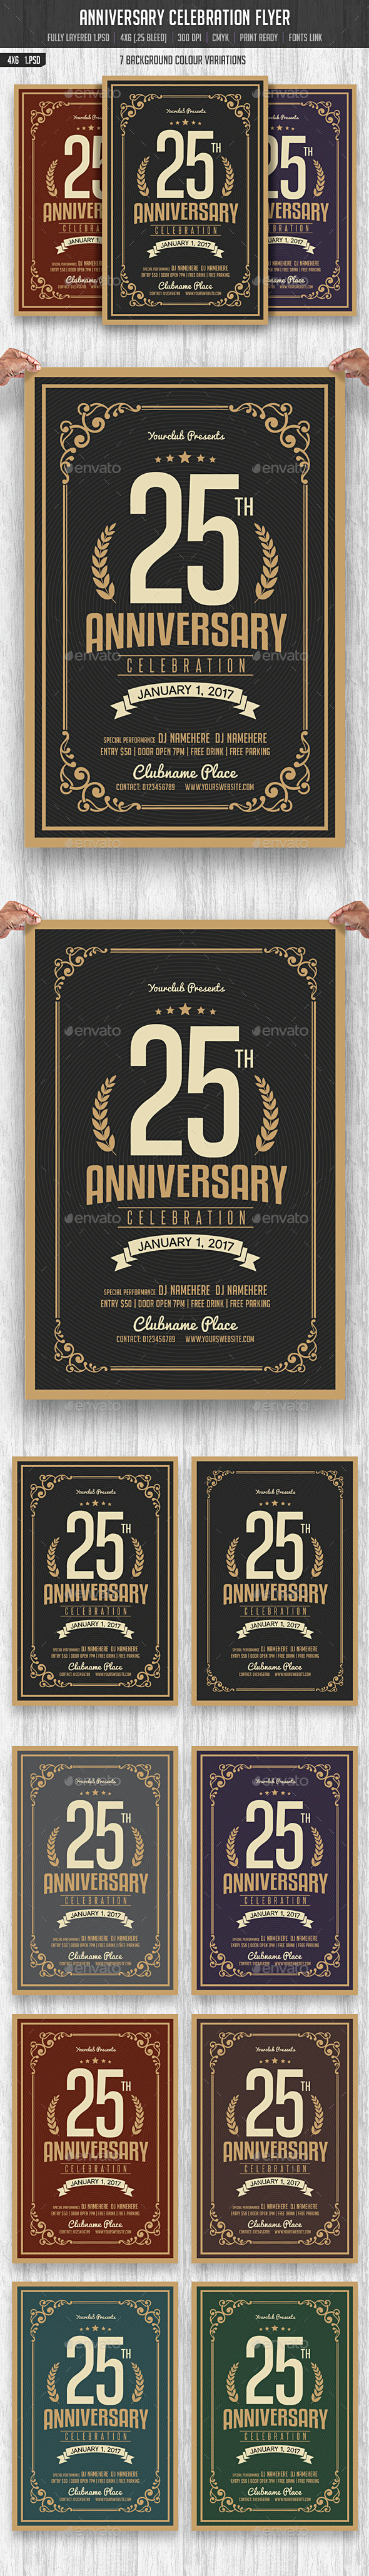 Anniversary Celebration Flyer - Events Flyers